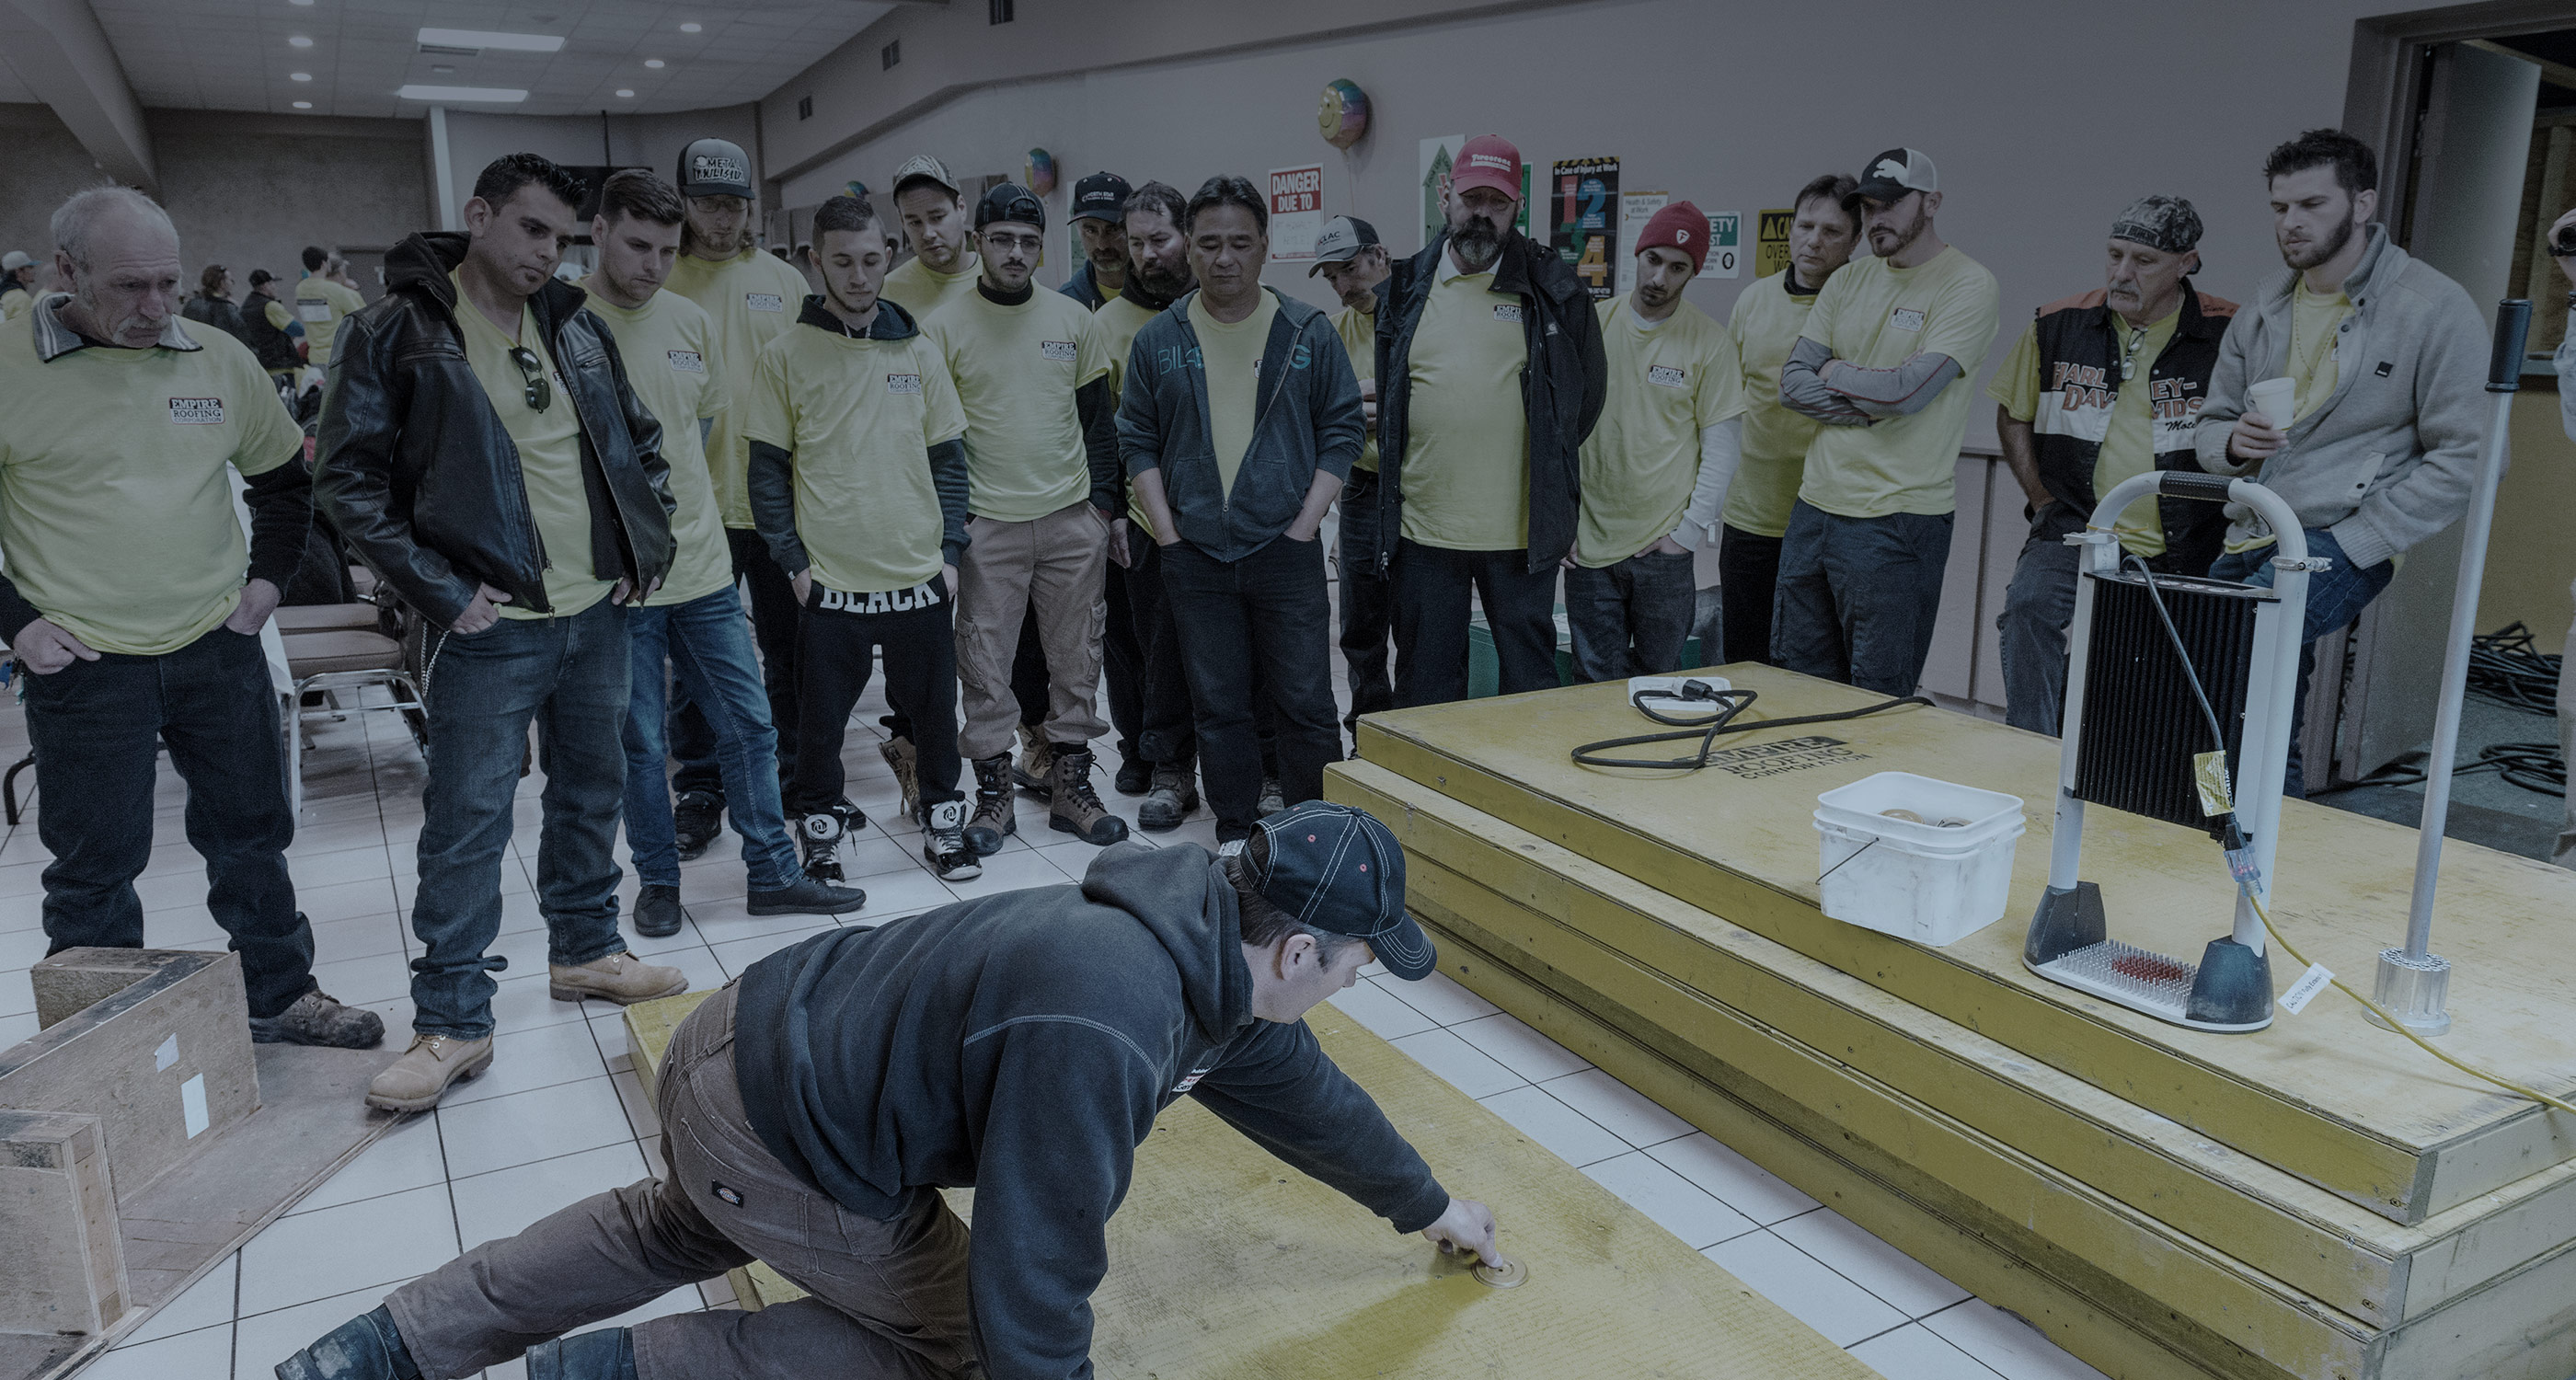 Commercial & industrial roofing training